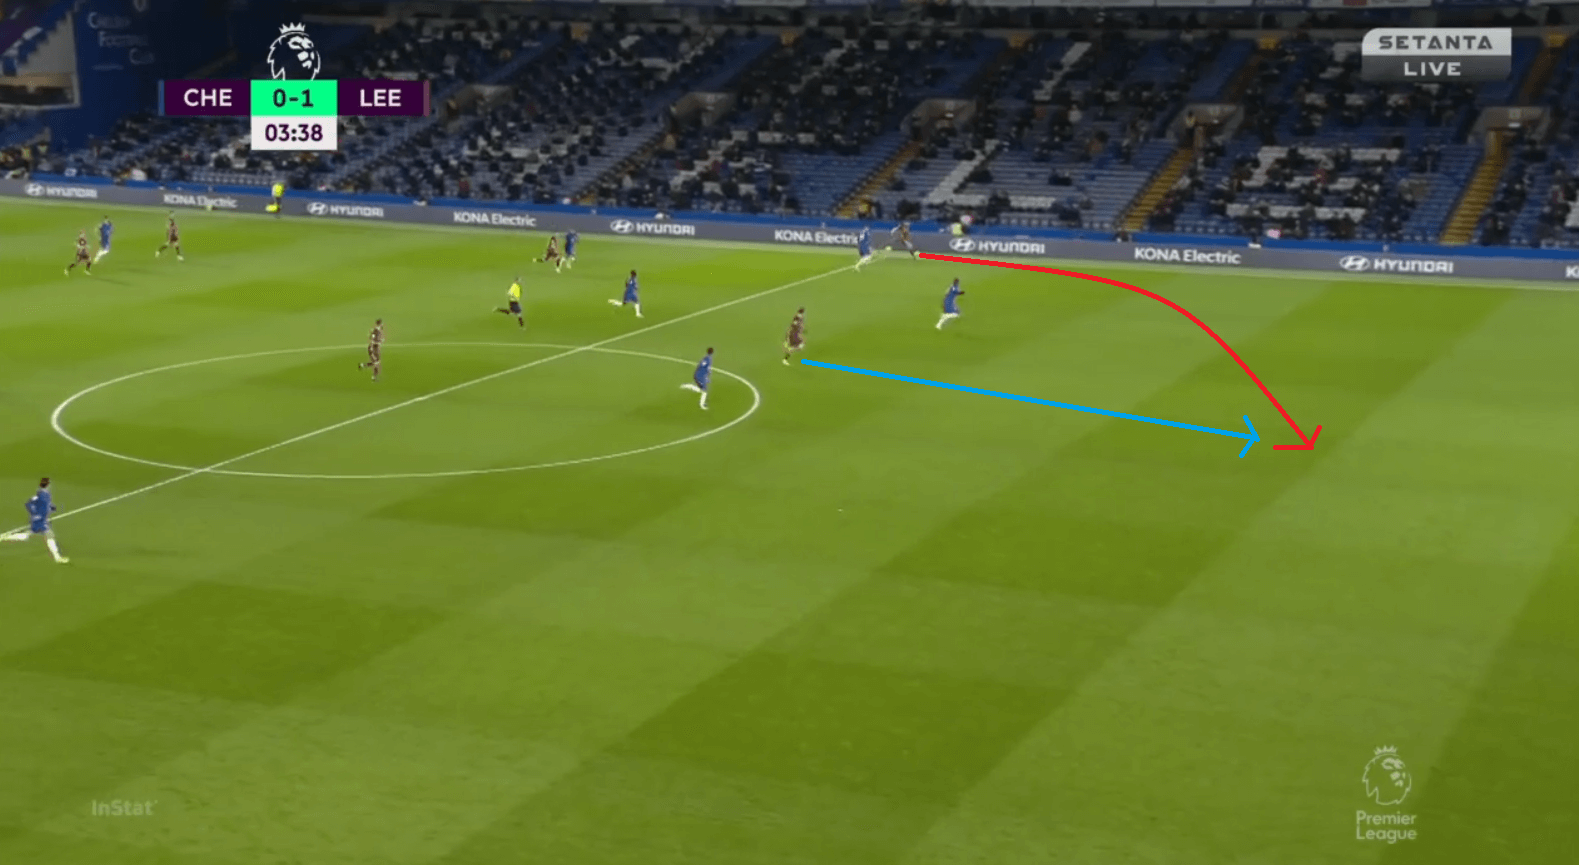 Premier League 2020/21: Chelsea vs Leeds - tactical analysis - tactics